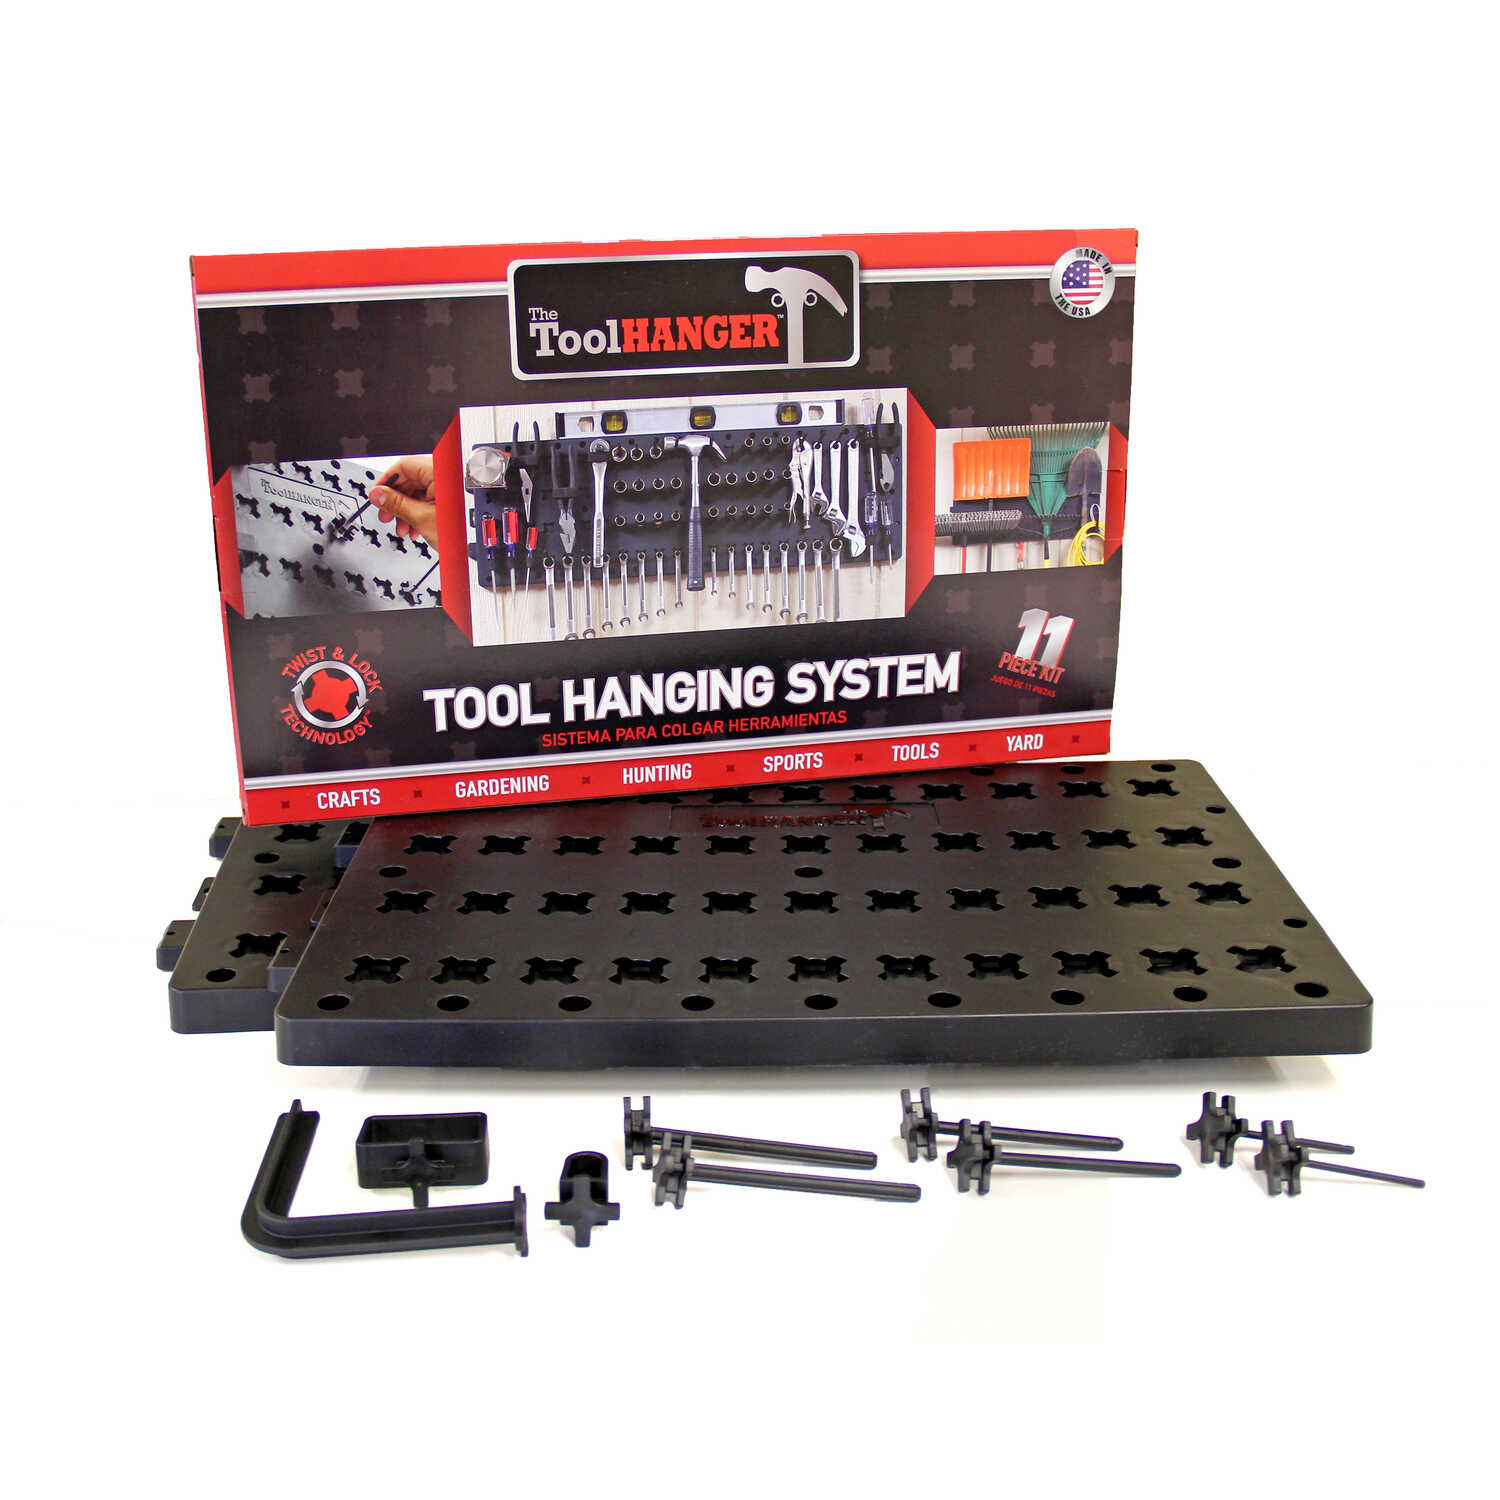 Hansen  The ToolHanger  11-1/2 in. H x 36 in. W x 5 in. D Black  Starter Kit  Plastic